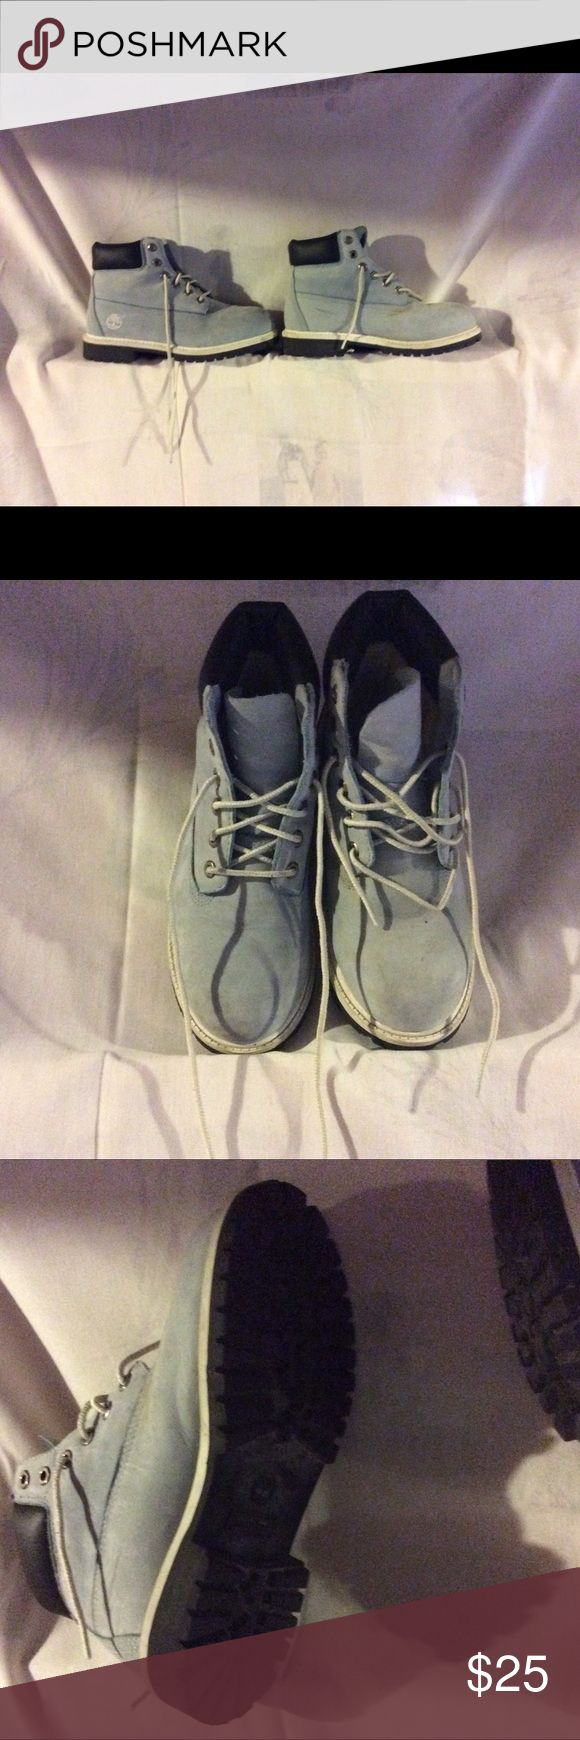 Girls Timberland Boots Lt Blue Girls Timberland boots. Brand new worn only a few times. Size 4 Timberland Shoes Boots